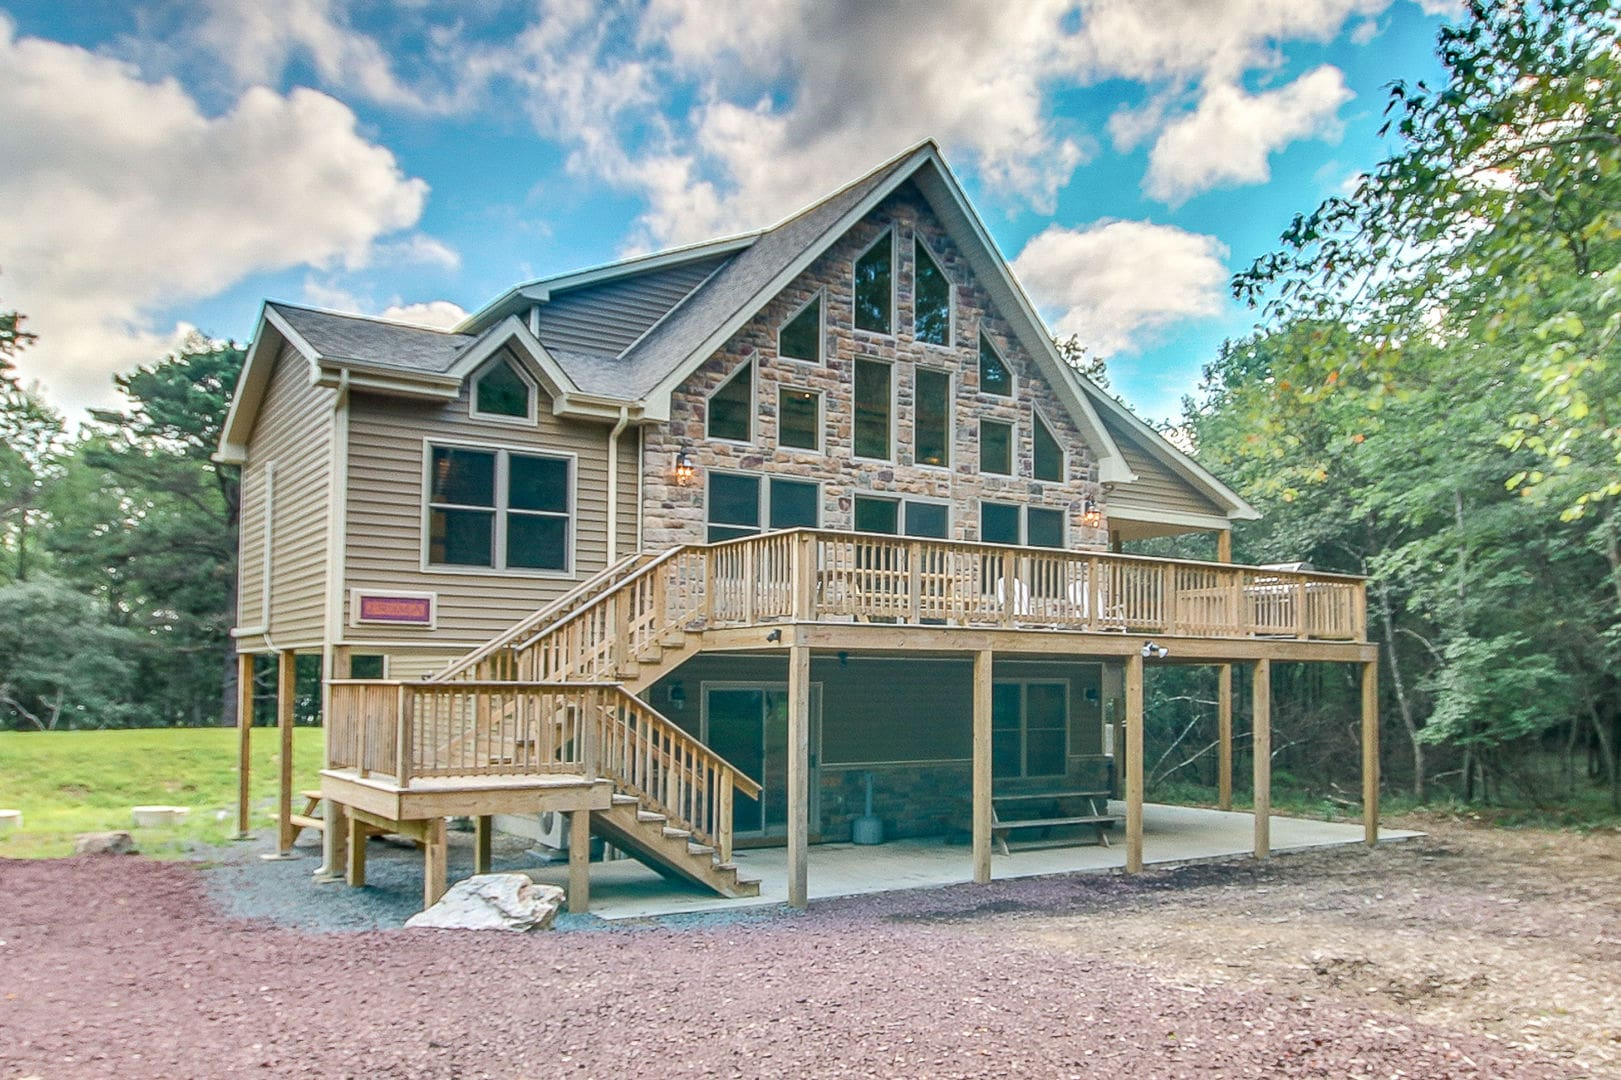 7 Bed Luxury Cabins in Poconos  Book a Poconos Getaways